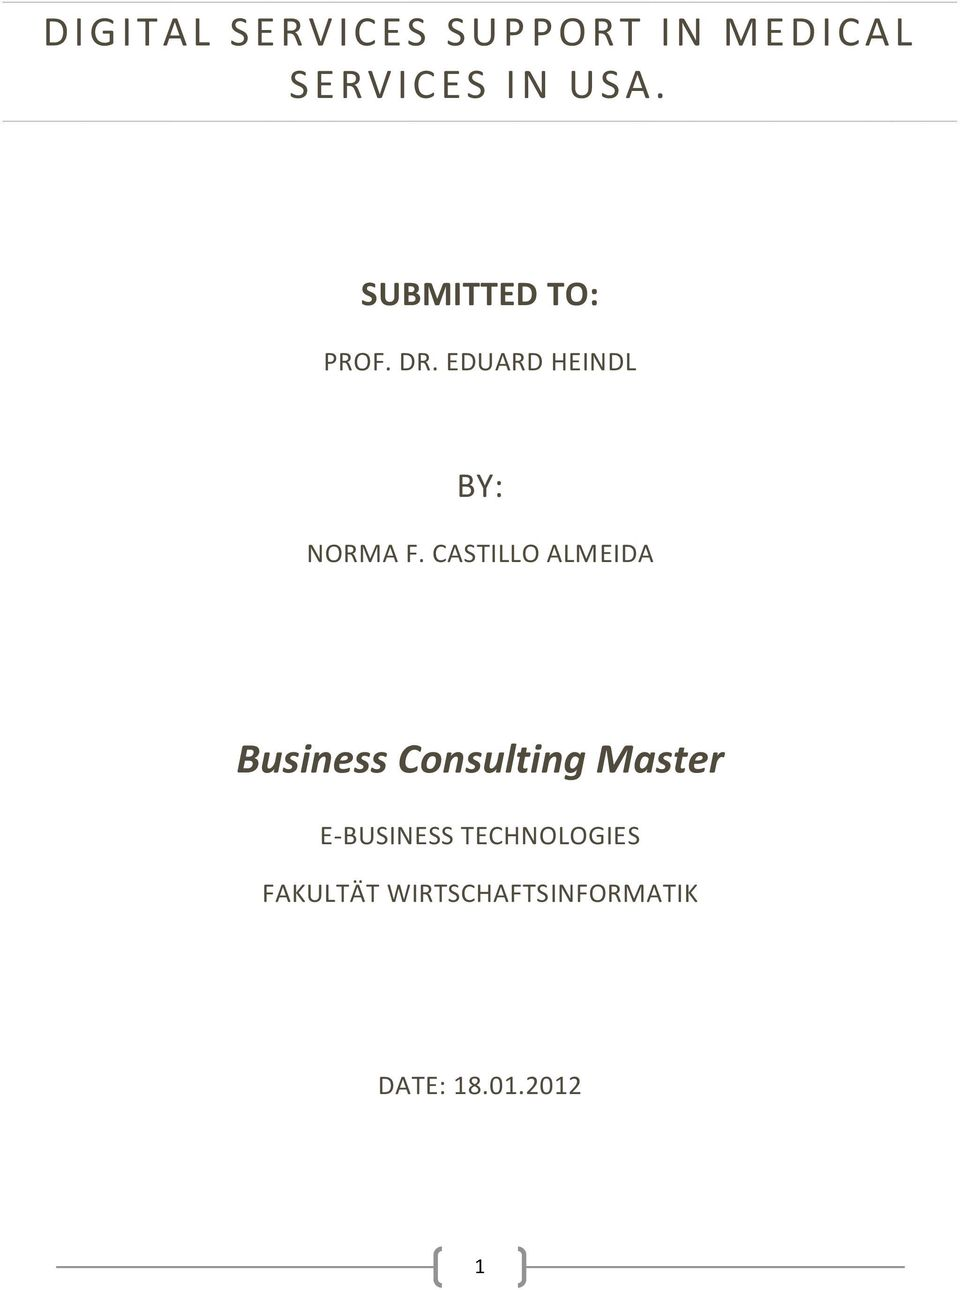 CASTILLO ALMEIDA Business Consulting Master E-BUSINESS